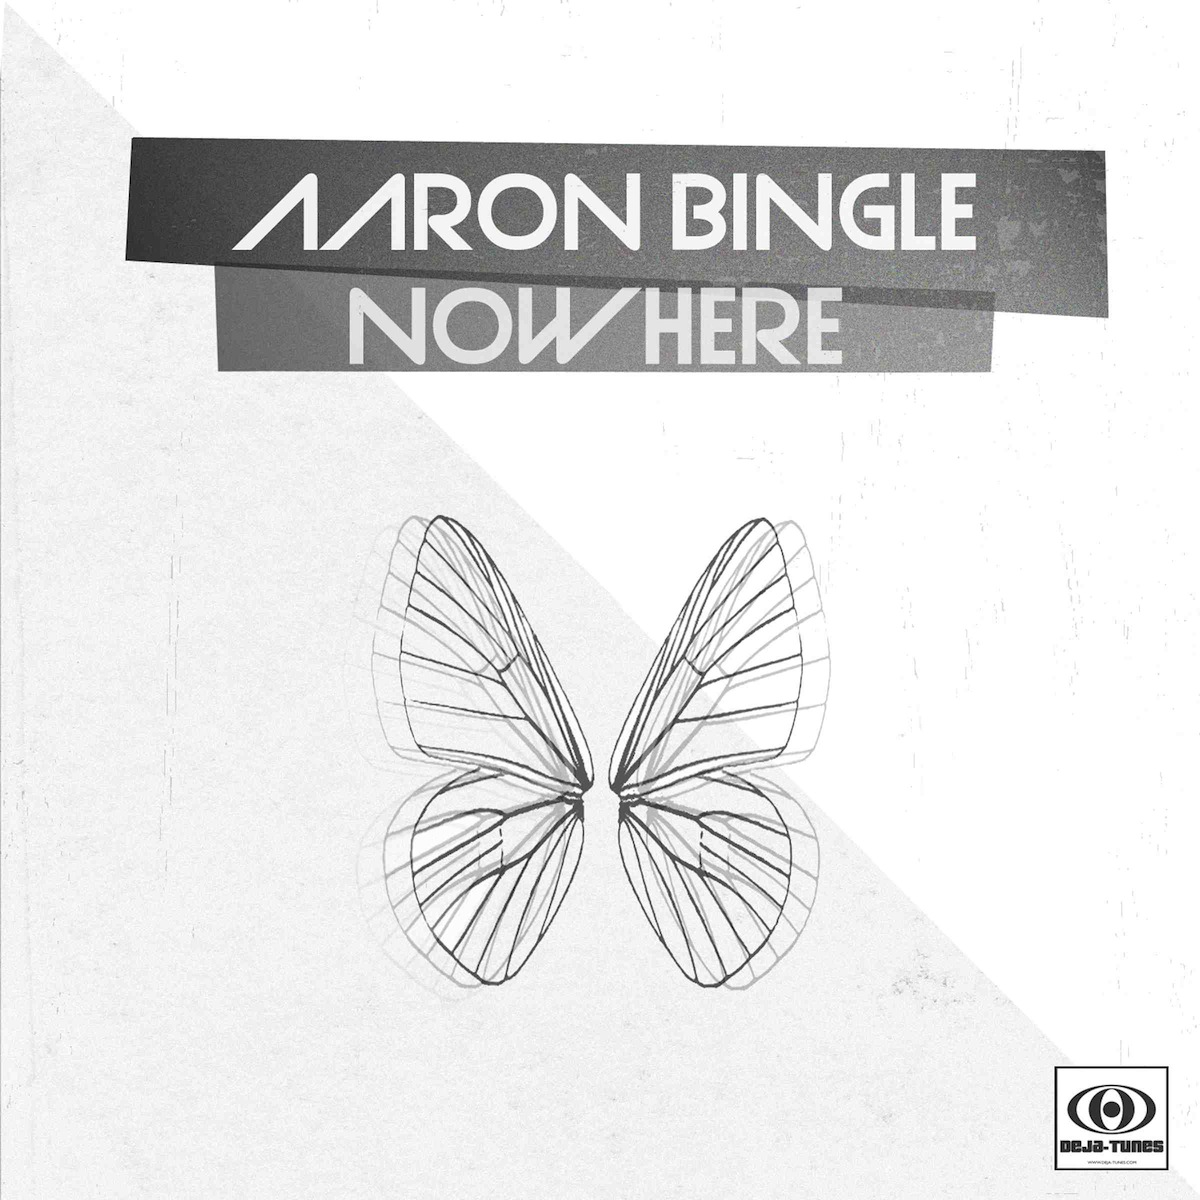 Artwork - Aaron Bingle - NowHere